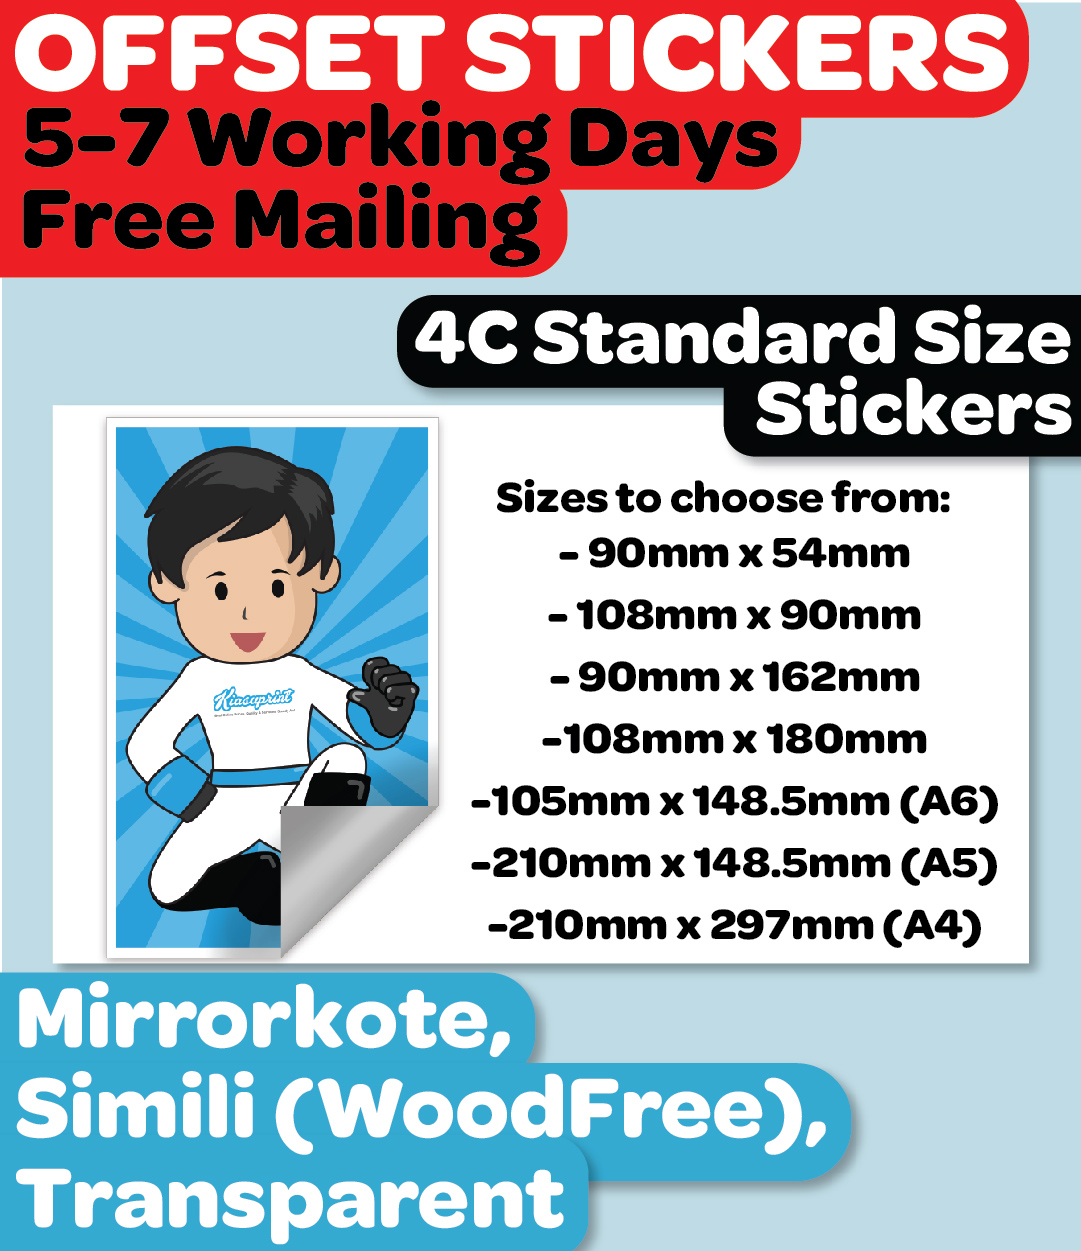 4C Standard Size Stickers (Most Economical)